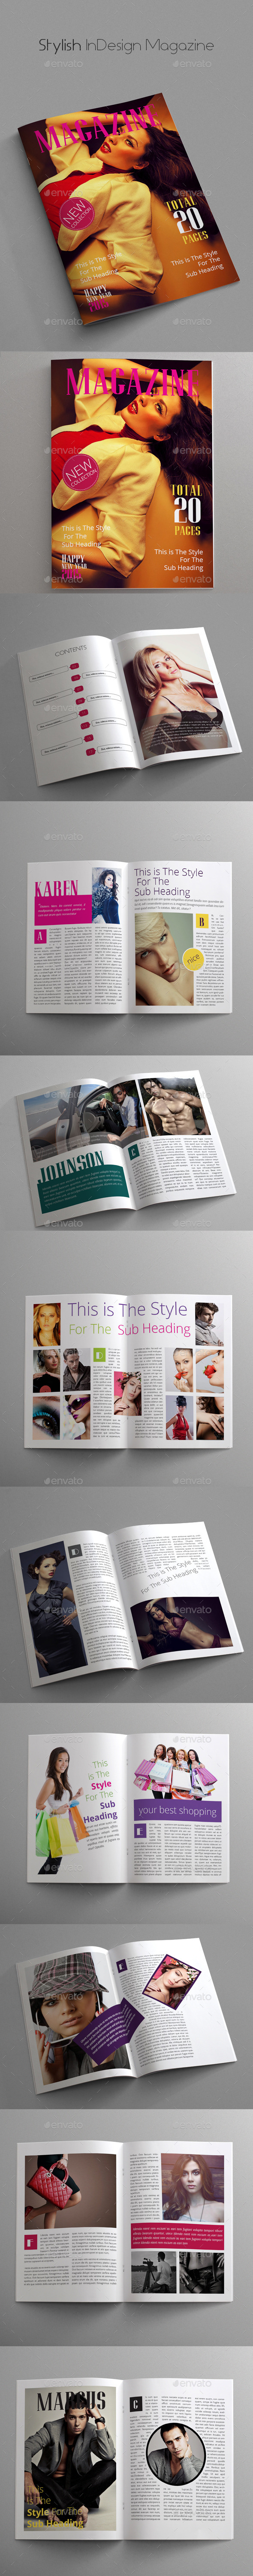 Stylish InDesign Magazine - Magazines Print Templates